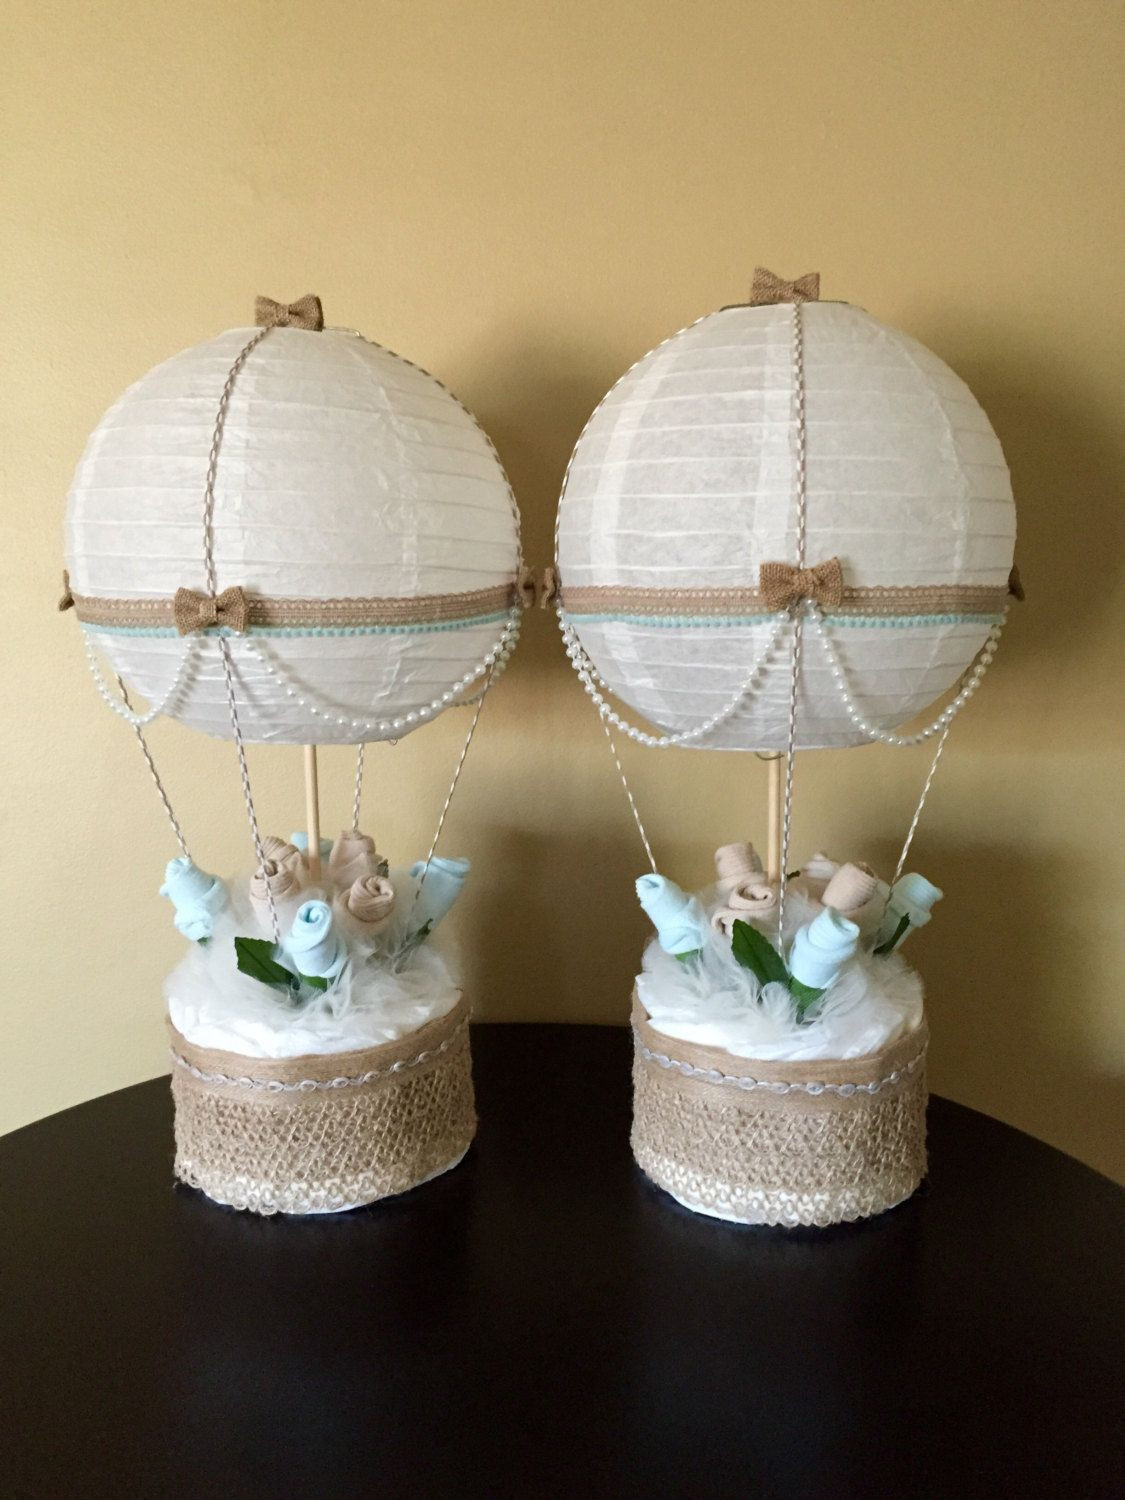 Decorating Ideas For Baby Shower Gift Table  Hot Air Balloon Baby Shower Table Centerpiece by